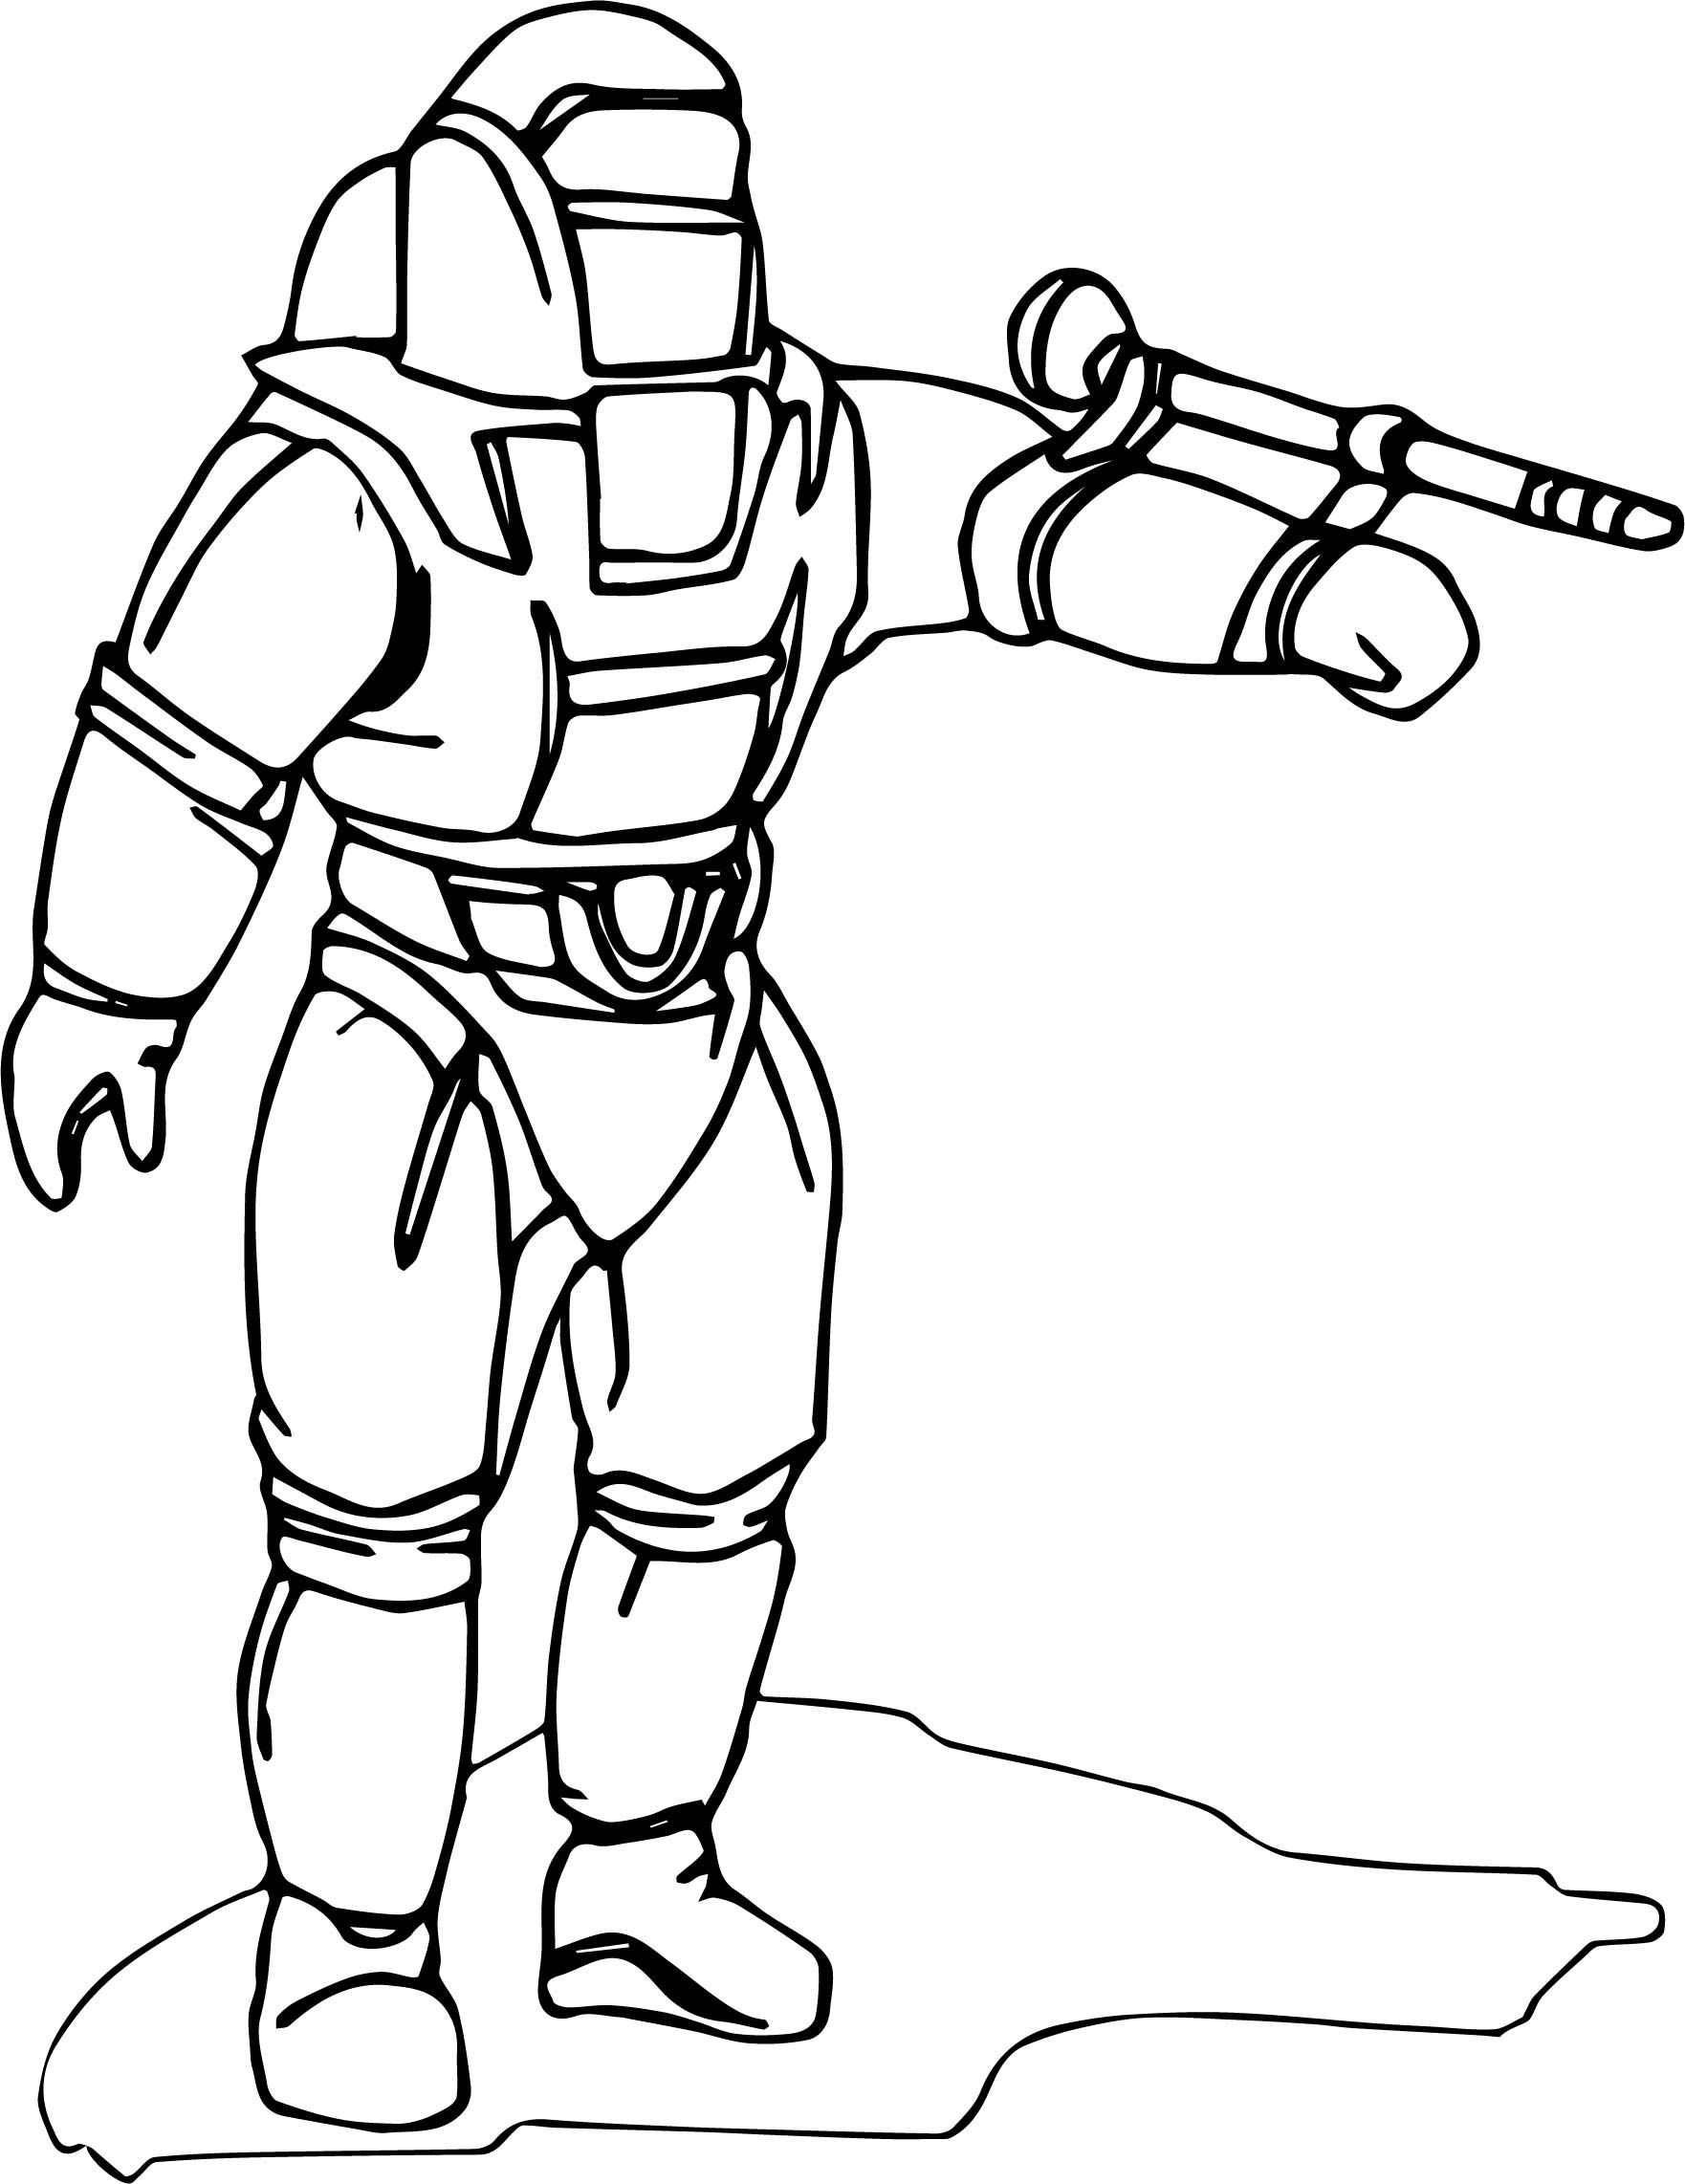 awesome Astronaut Fire Coloring Page | wecoloringpage | Pinterest ...